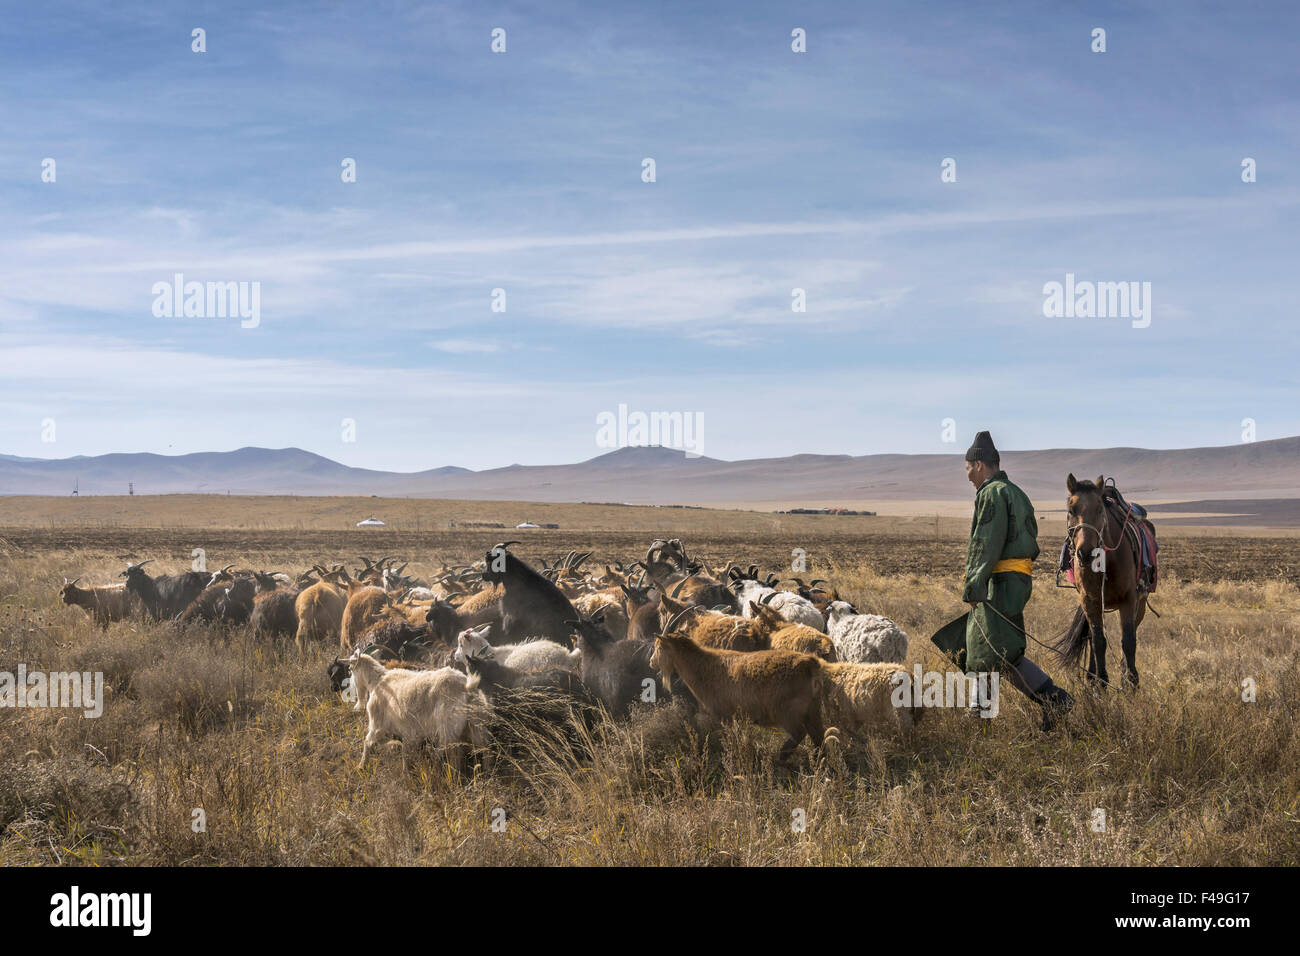 Mongolian herder and his horse driving cashmere goats, near Hustai National Park, Mongolia - Stock Image